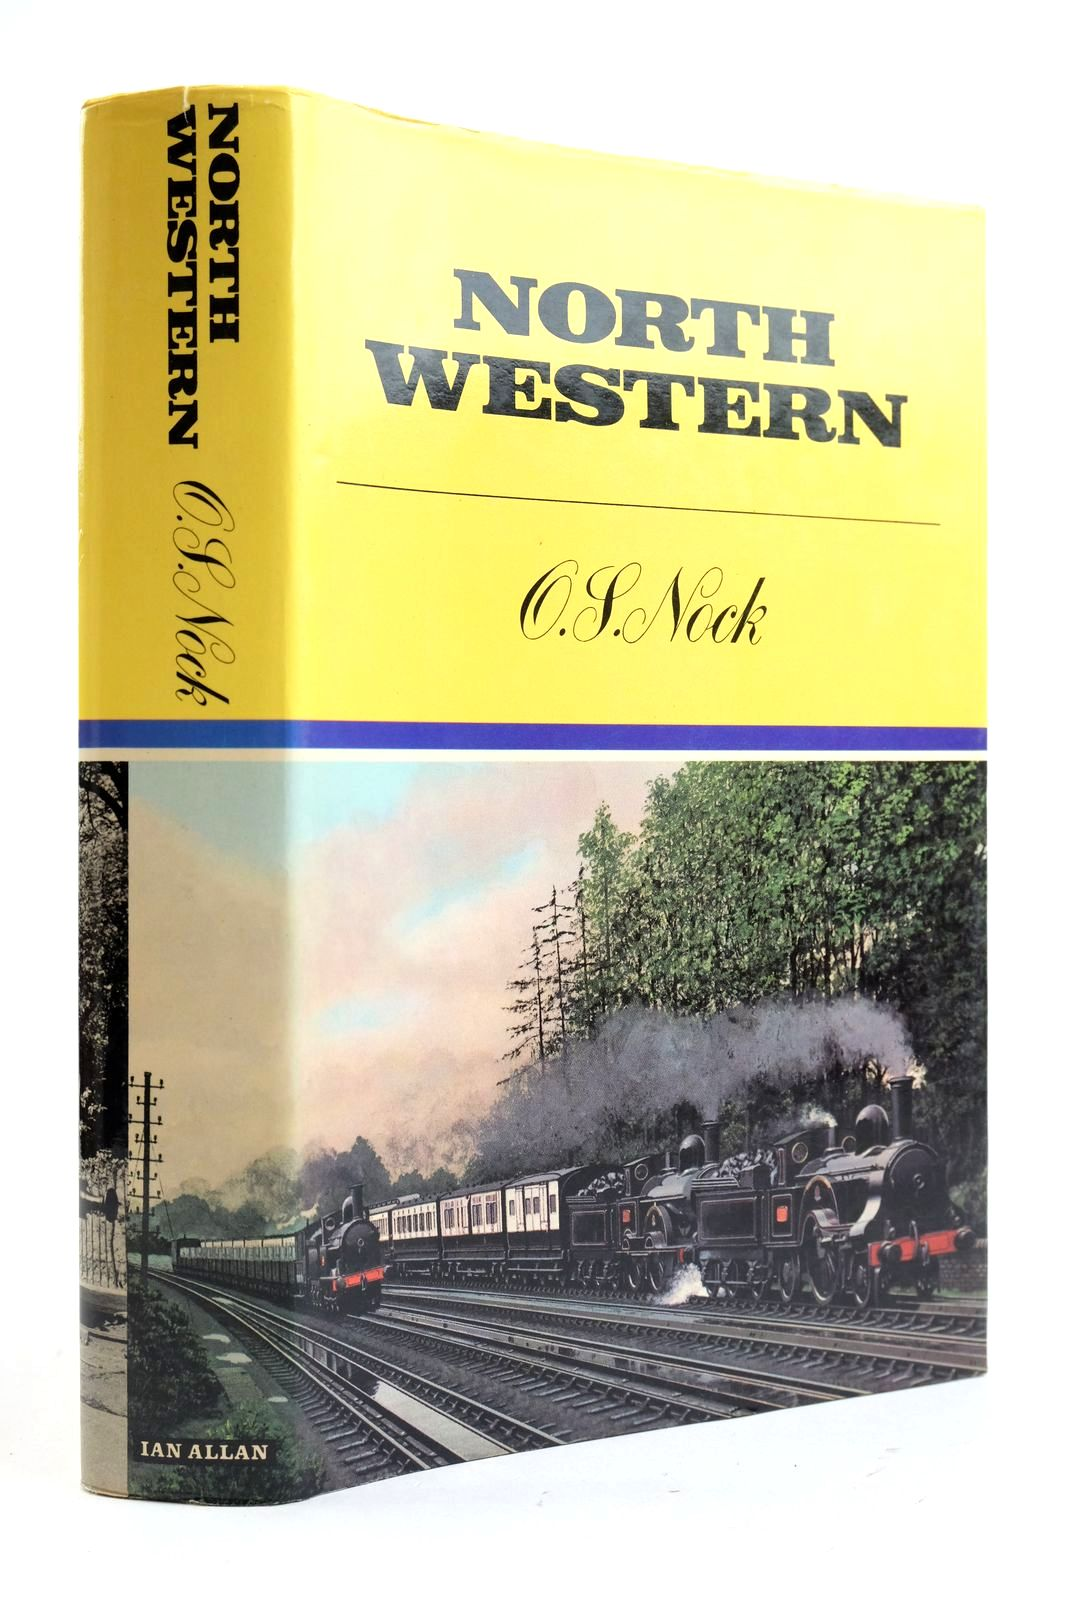 Photo of NORTH WESTERN A SAGA OF THE PREMIER LINE OF GREAT BRITAIN: 1846-1922 written by Nock, O.S. published by Ian Allan (STOCK CODE: 2133043)  for sale by Stella & Rose's Books